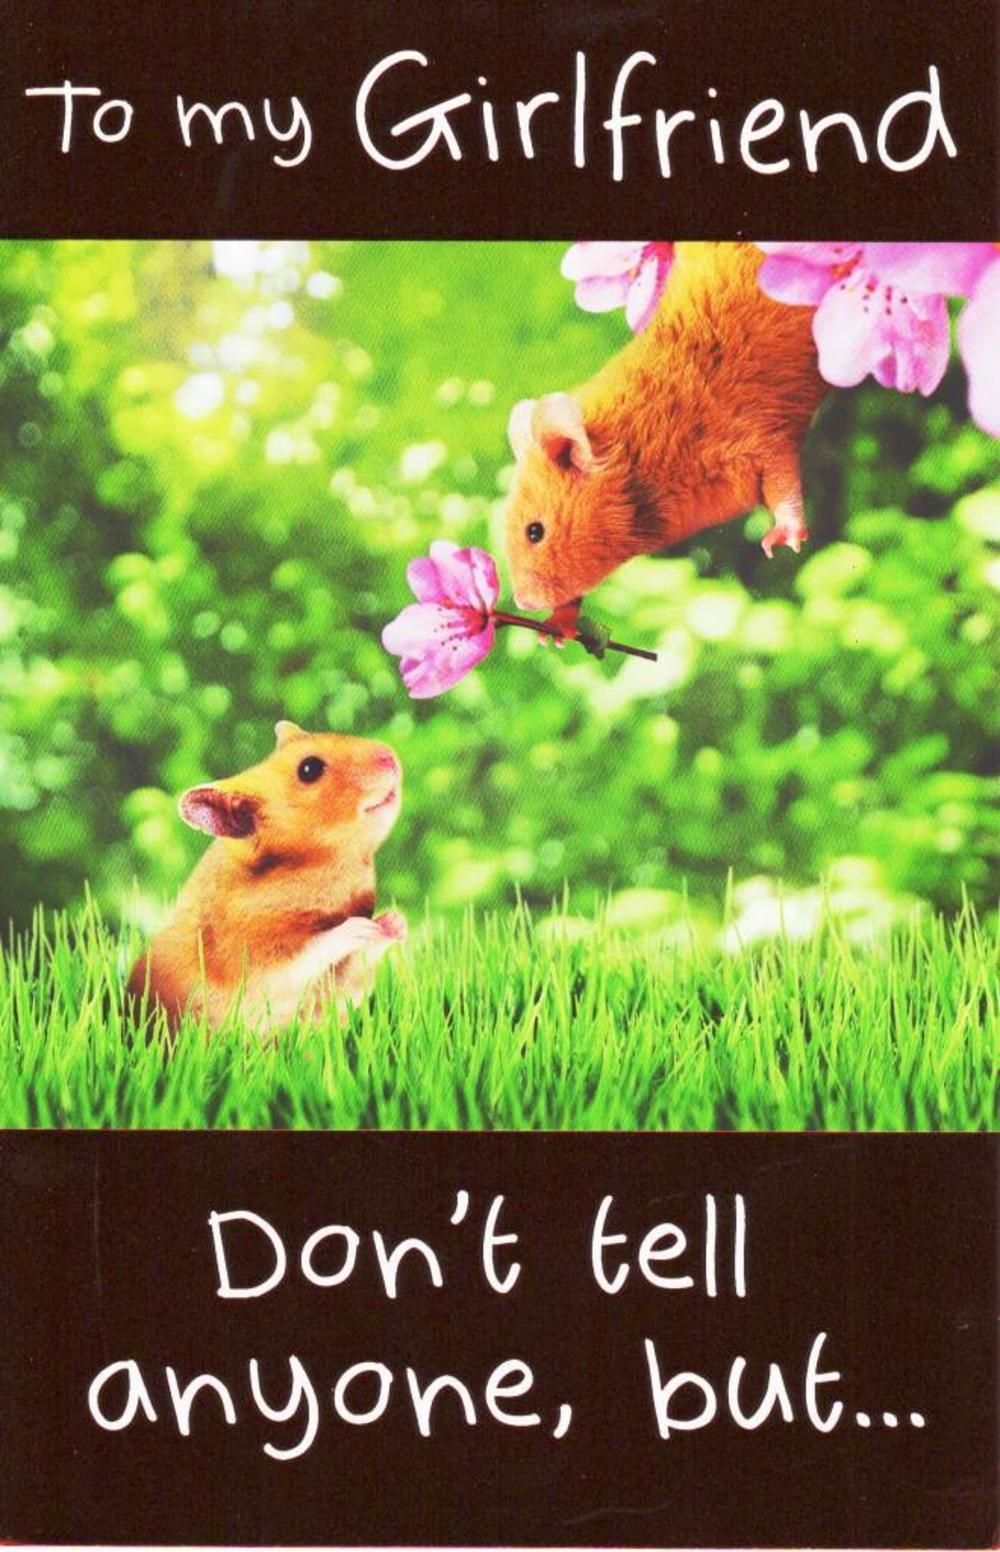 To My Girlfriend Cute Hamster Valentine's Day Card